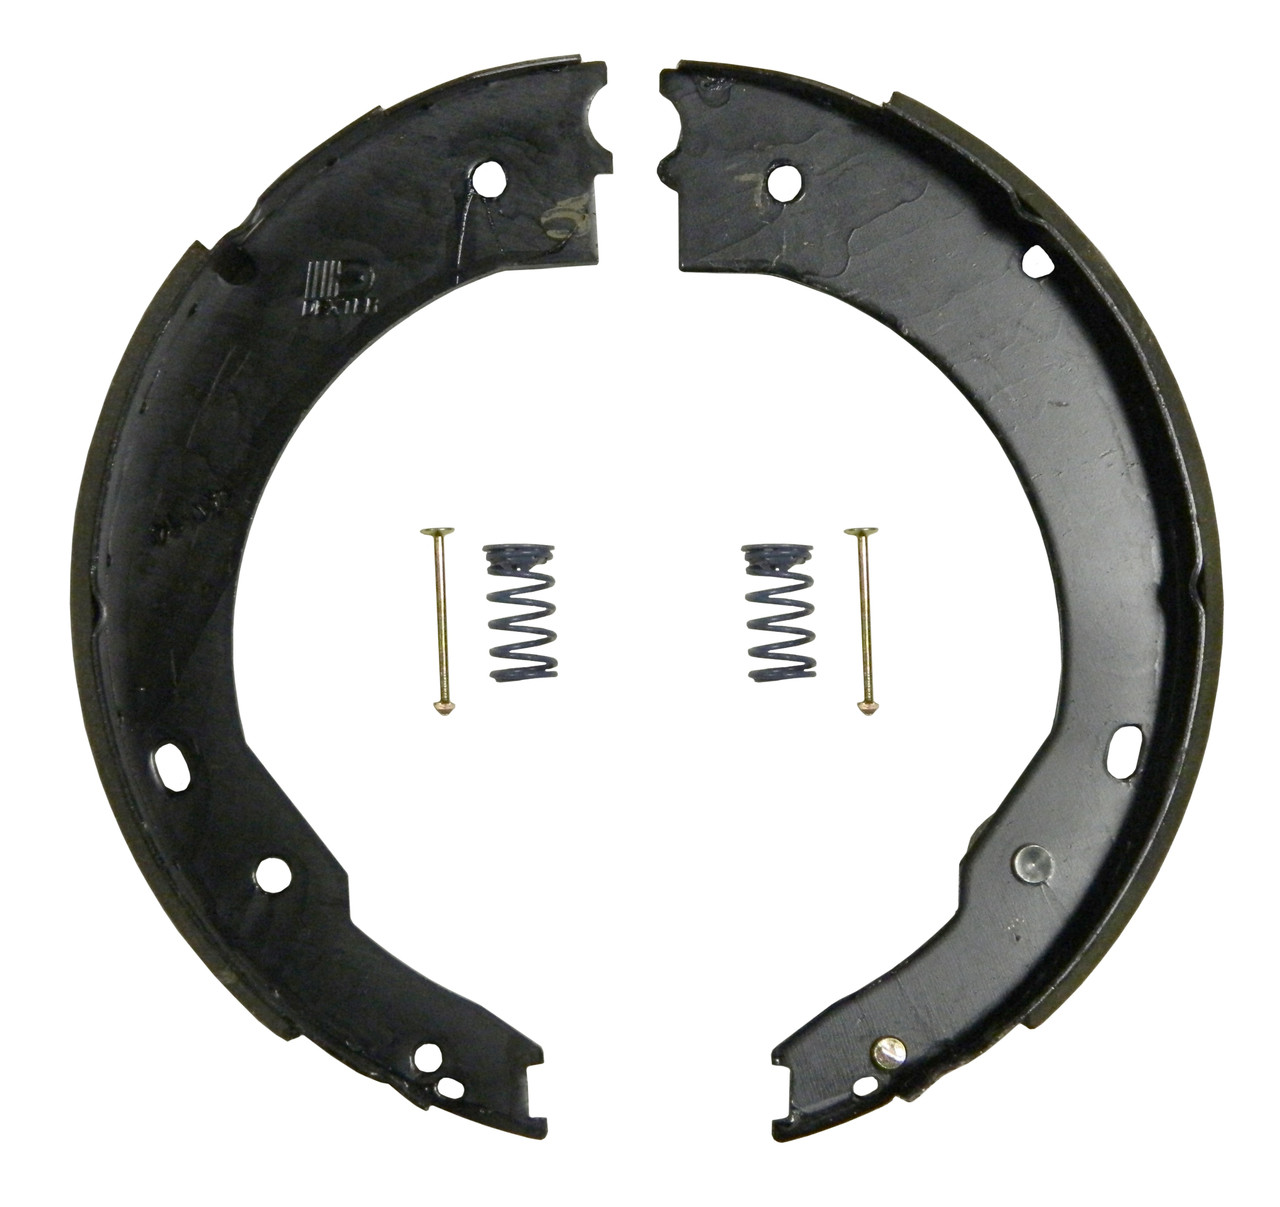 71-675 --- Shoe and Lining Kit for 7,000 lb Capacity Dexter Nev-R-Adjust Electric Brakes - LH